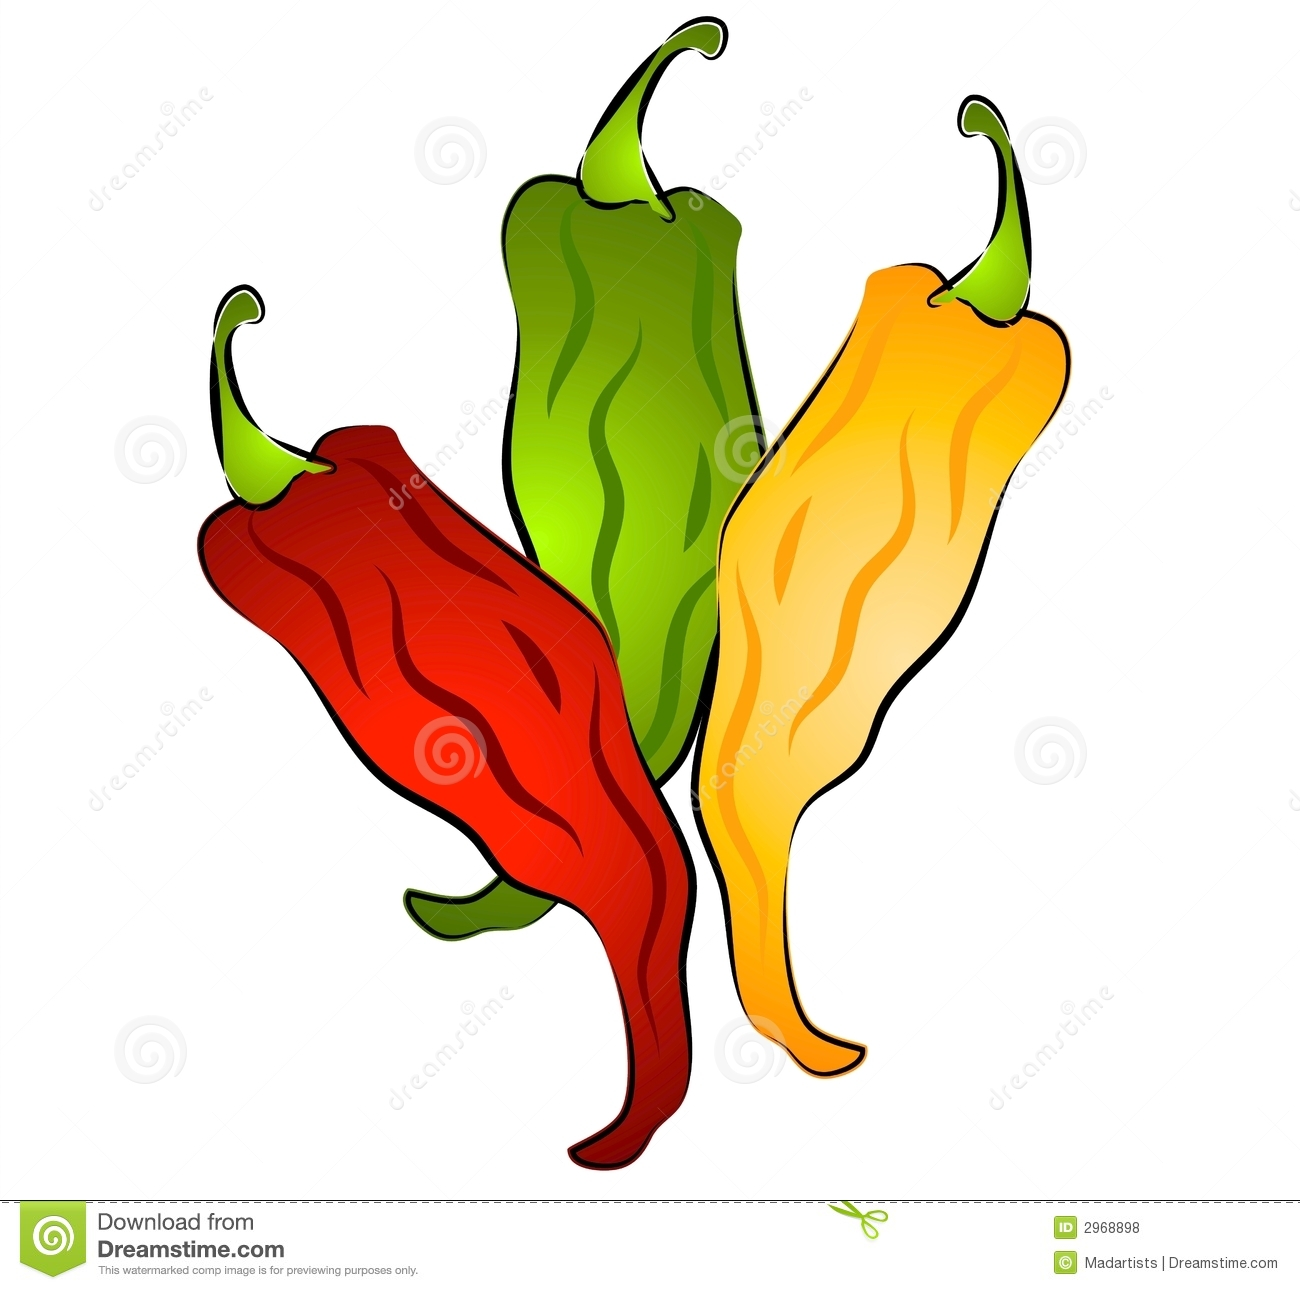 clip art clipartlook. Peppers clipart chili pepper